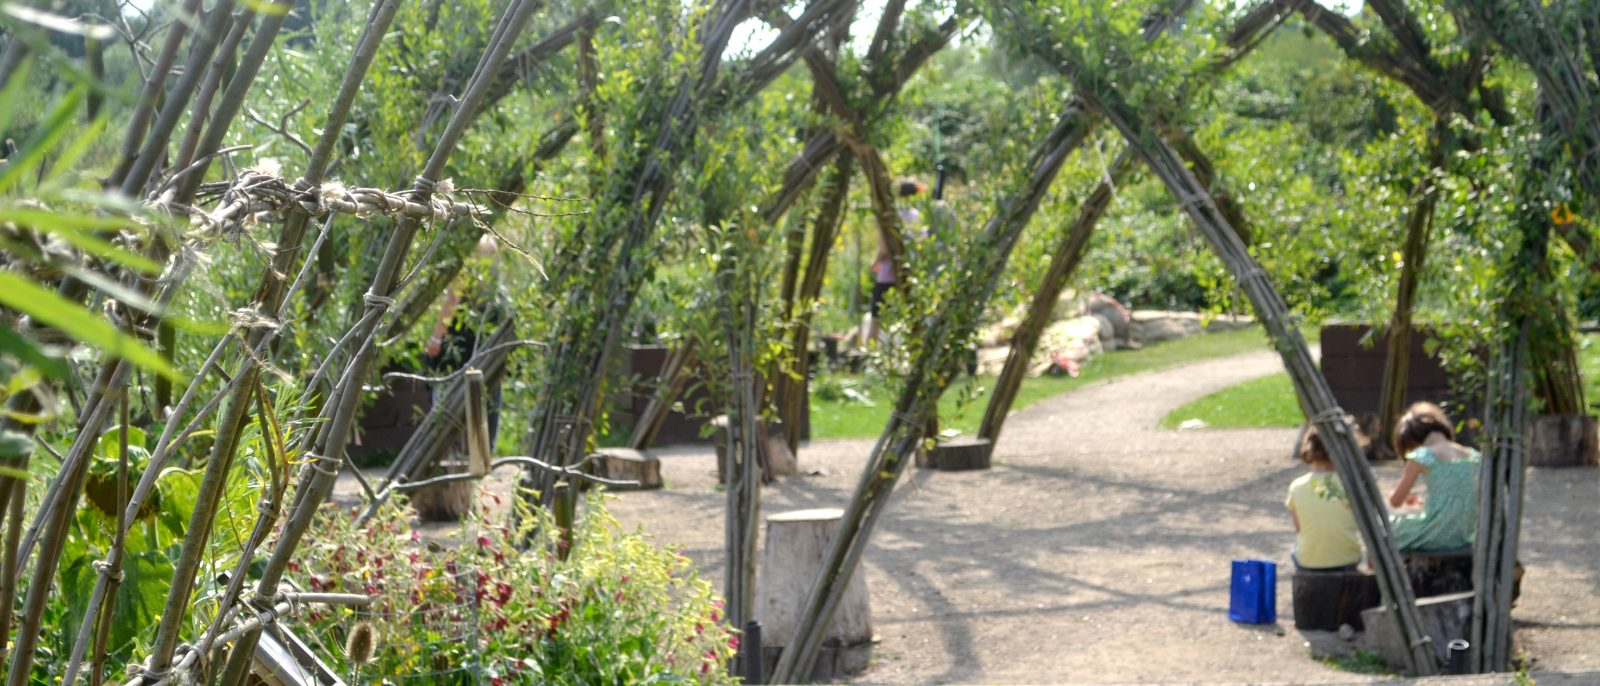 Willow, Harvesting, Planting & Creations camp mentored by Ed Dale-Harris